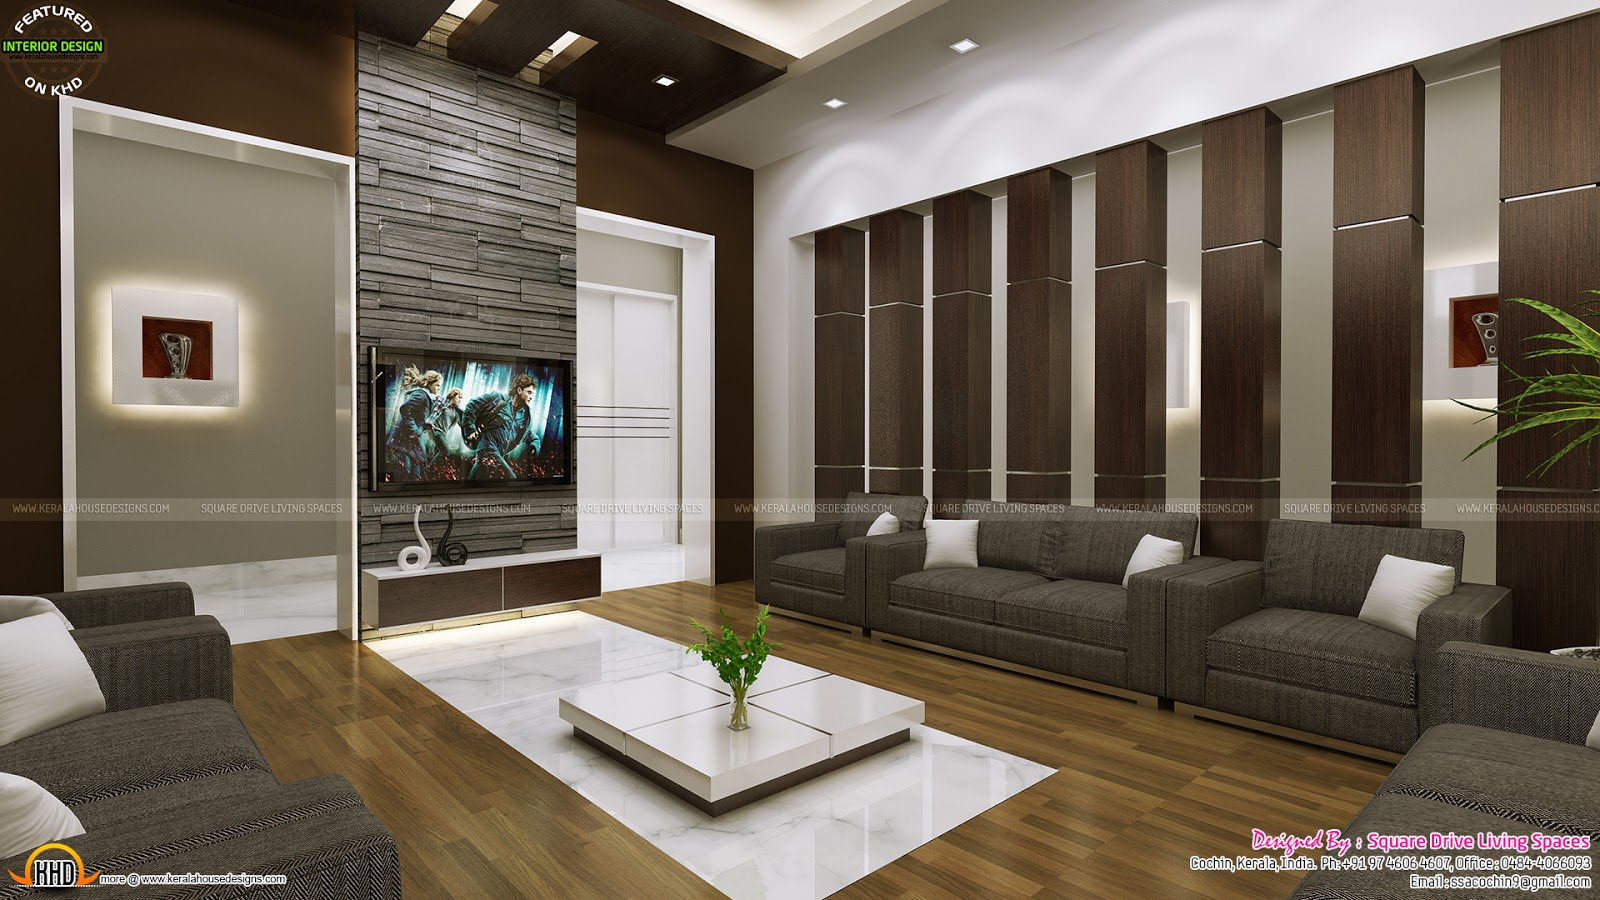 Attractive home interior ideas kerala home design and for Interior designs in home